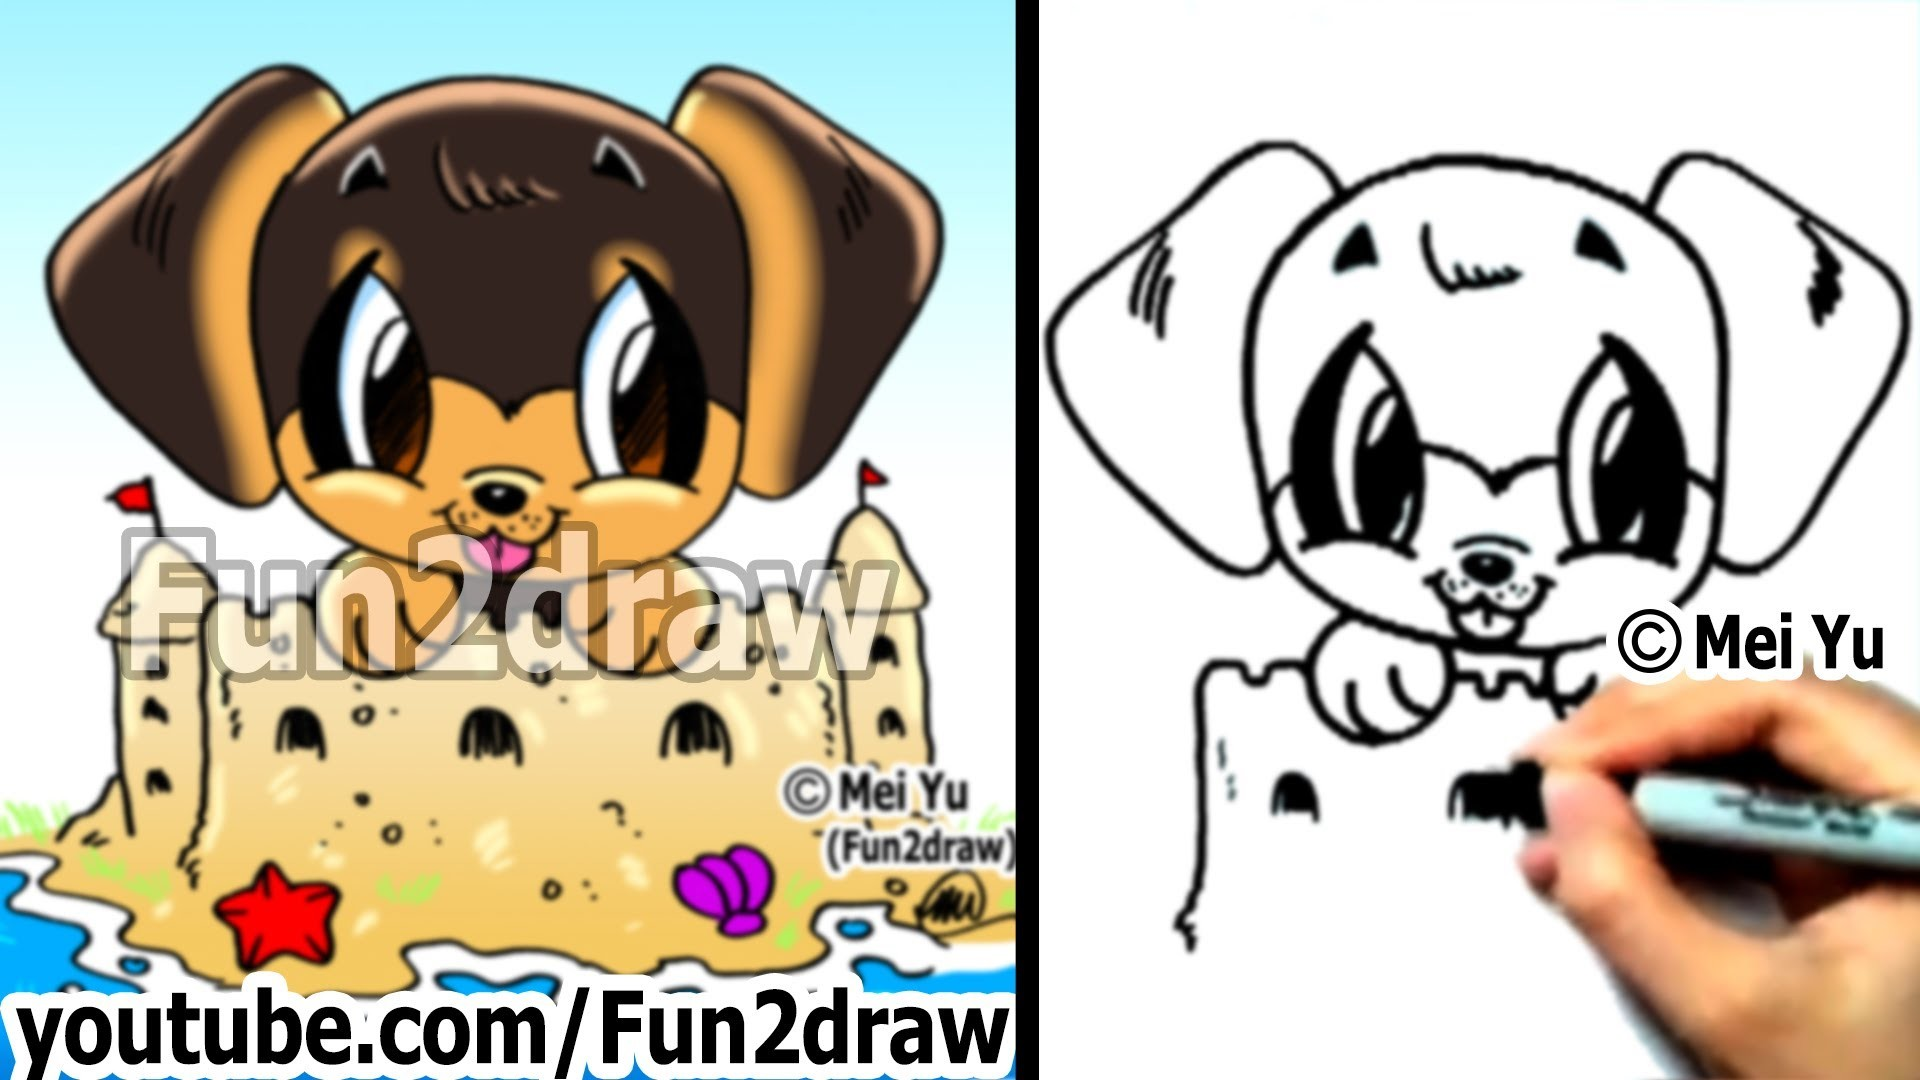 Rottweiler puppy - Cute dogs - How to Draw a Dog for Summer - Drawing Tutorials - Fun2draw